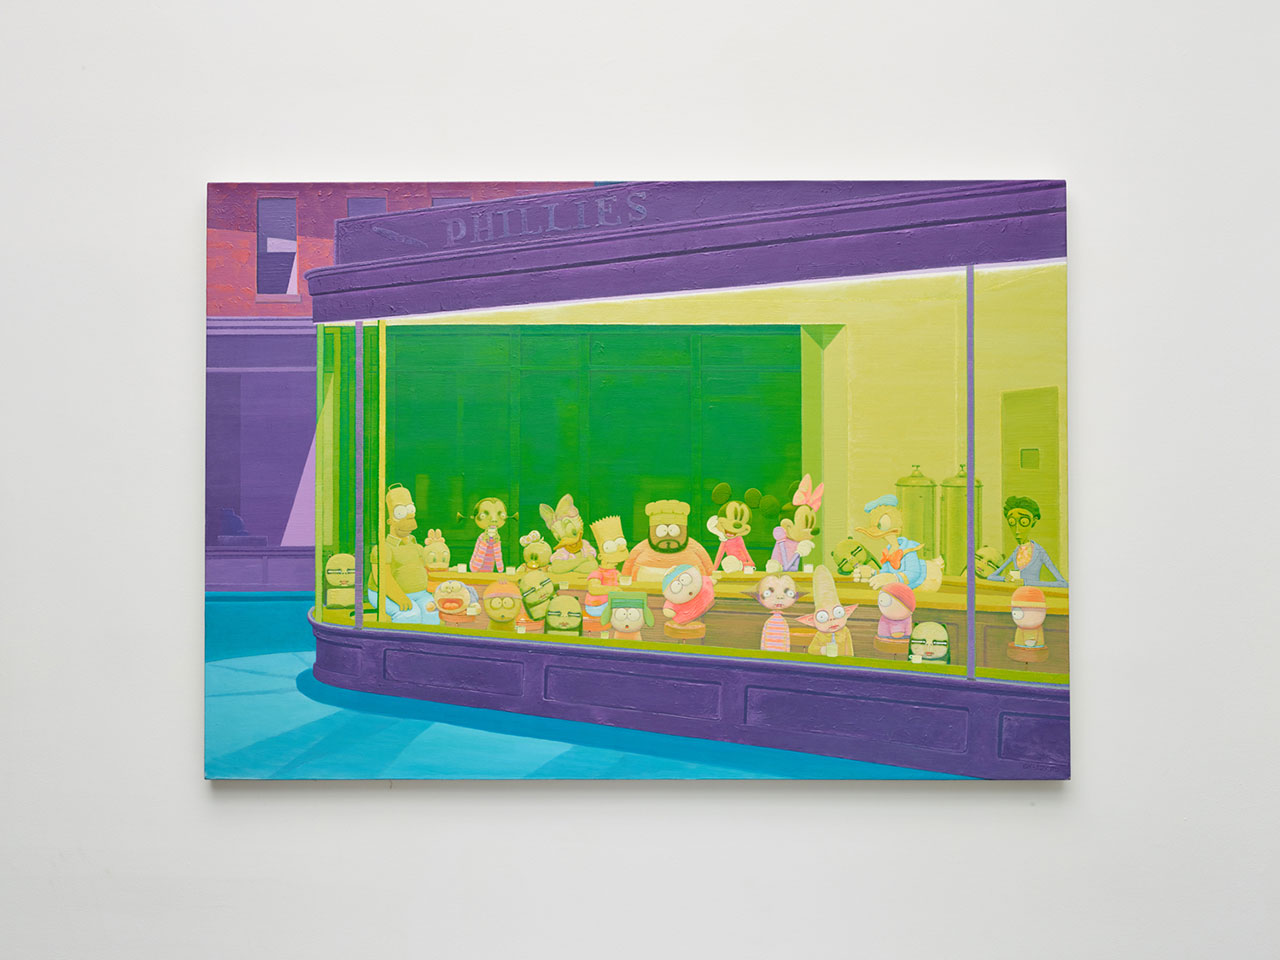 Zhang Gong, Sister Pan's Cafe, 2012. Acrylic on canvas, 47 1/4 x 68 7/8 inches (120 x 175 cm). Courtesy of Klein Sun Gallery and the artist, © Zhang Gong. Photo by Tim Schutsky.